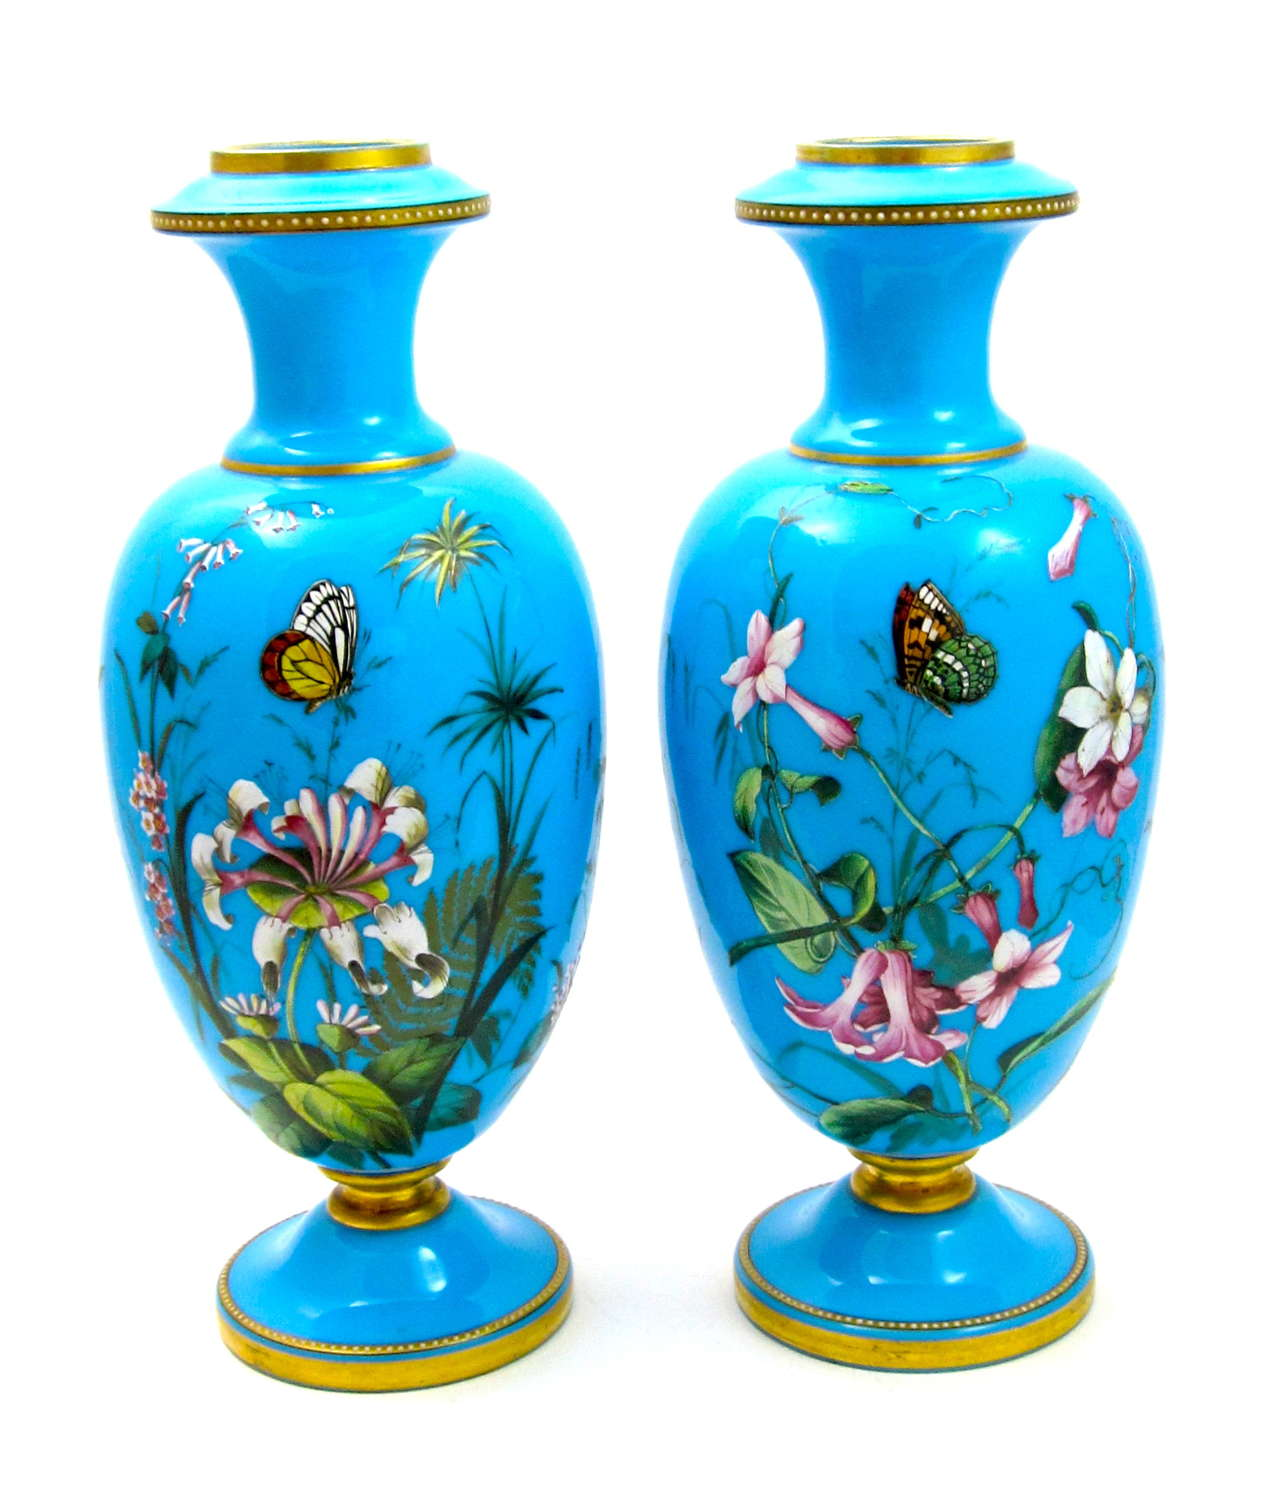 Pair of Exceptional MOSER Blue Opaline Glass Vases with Butterflies